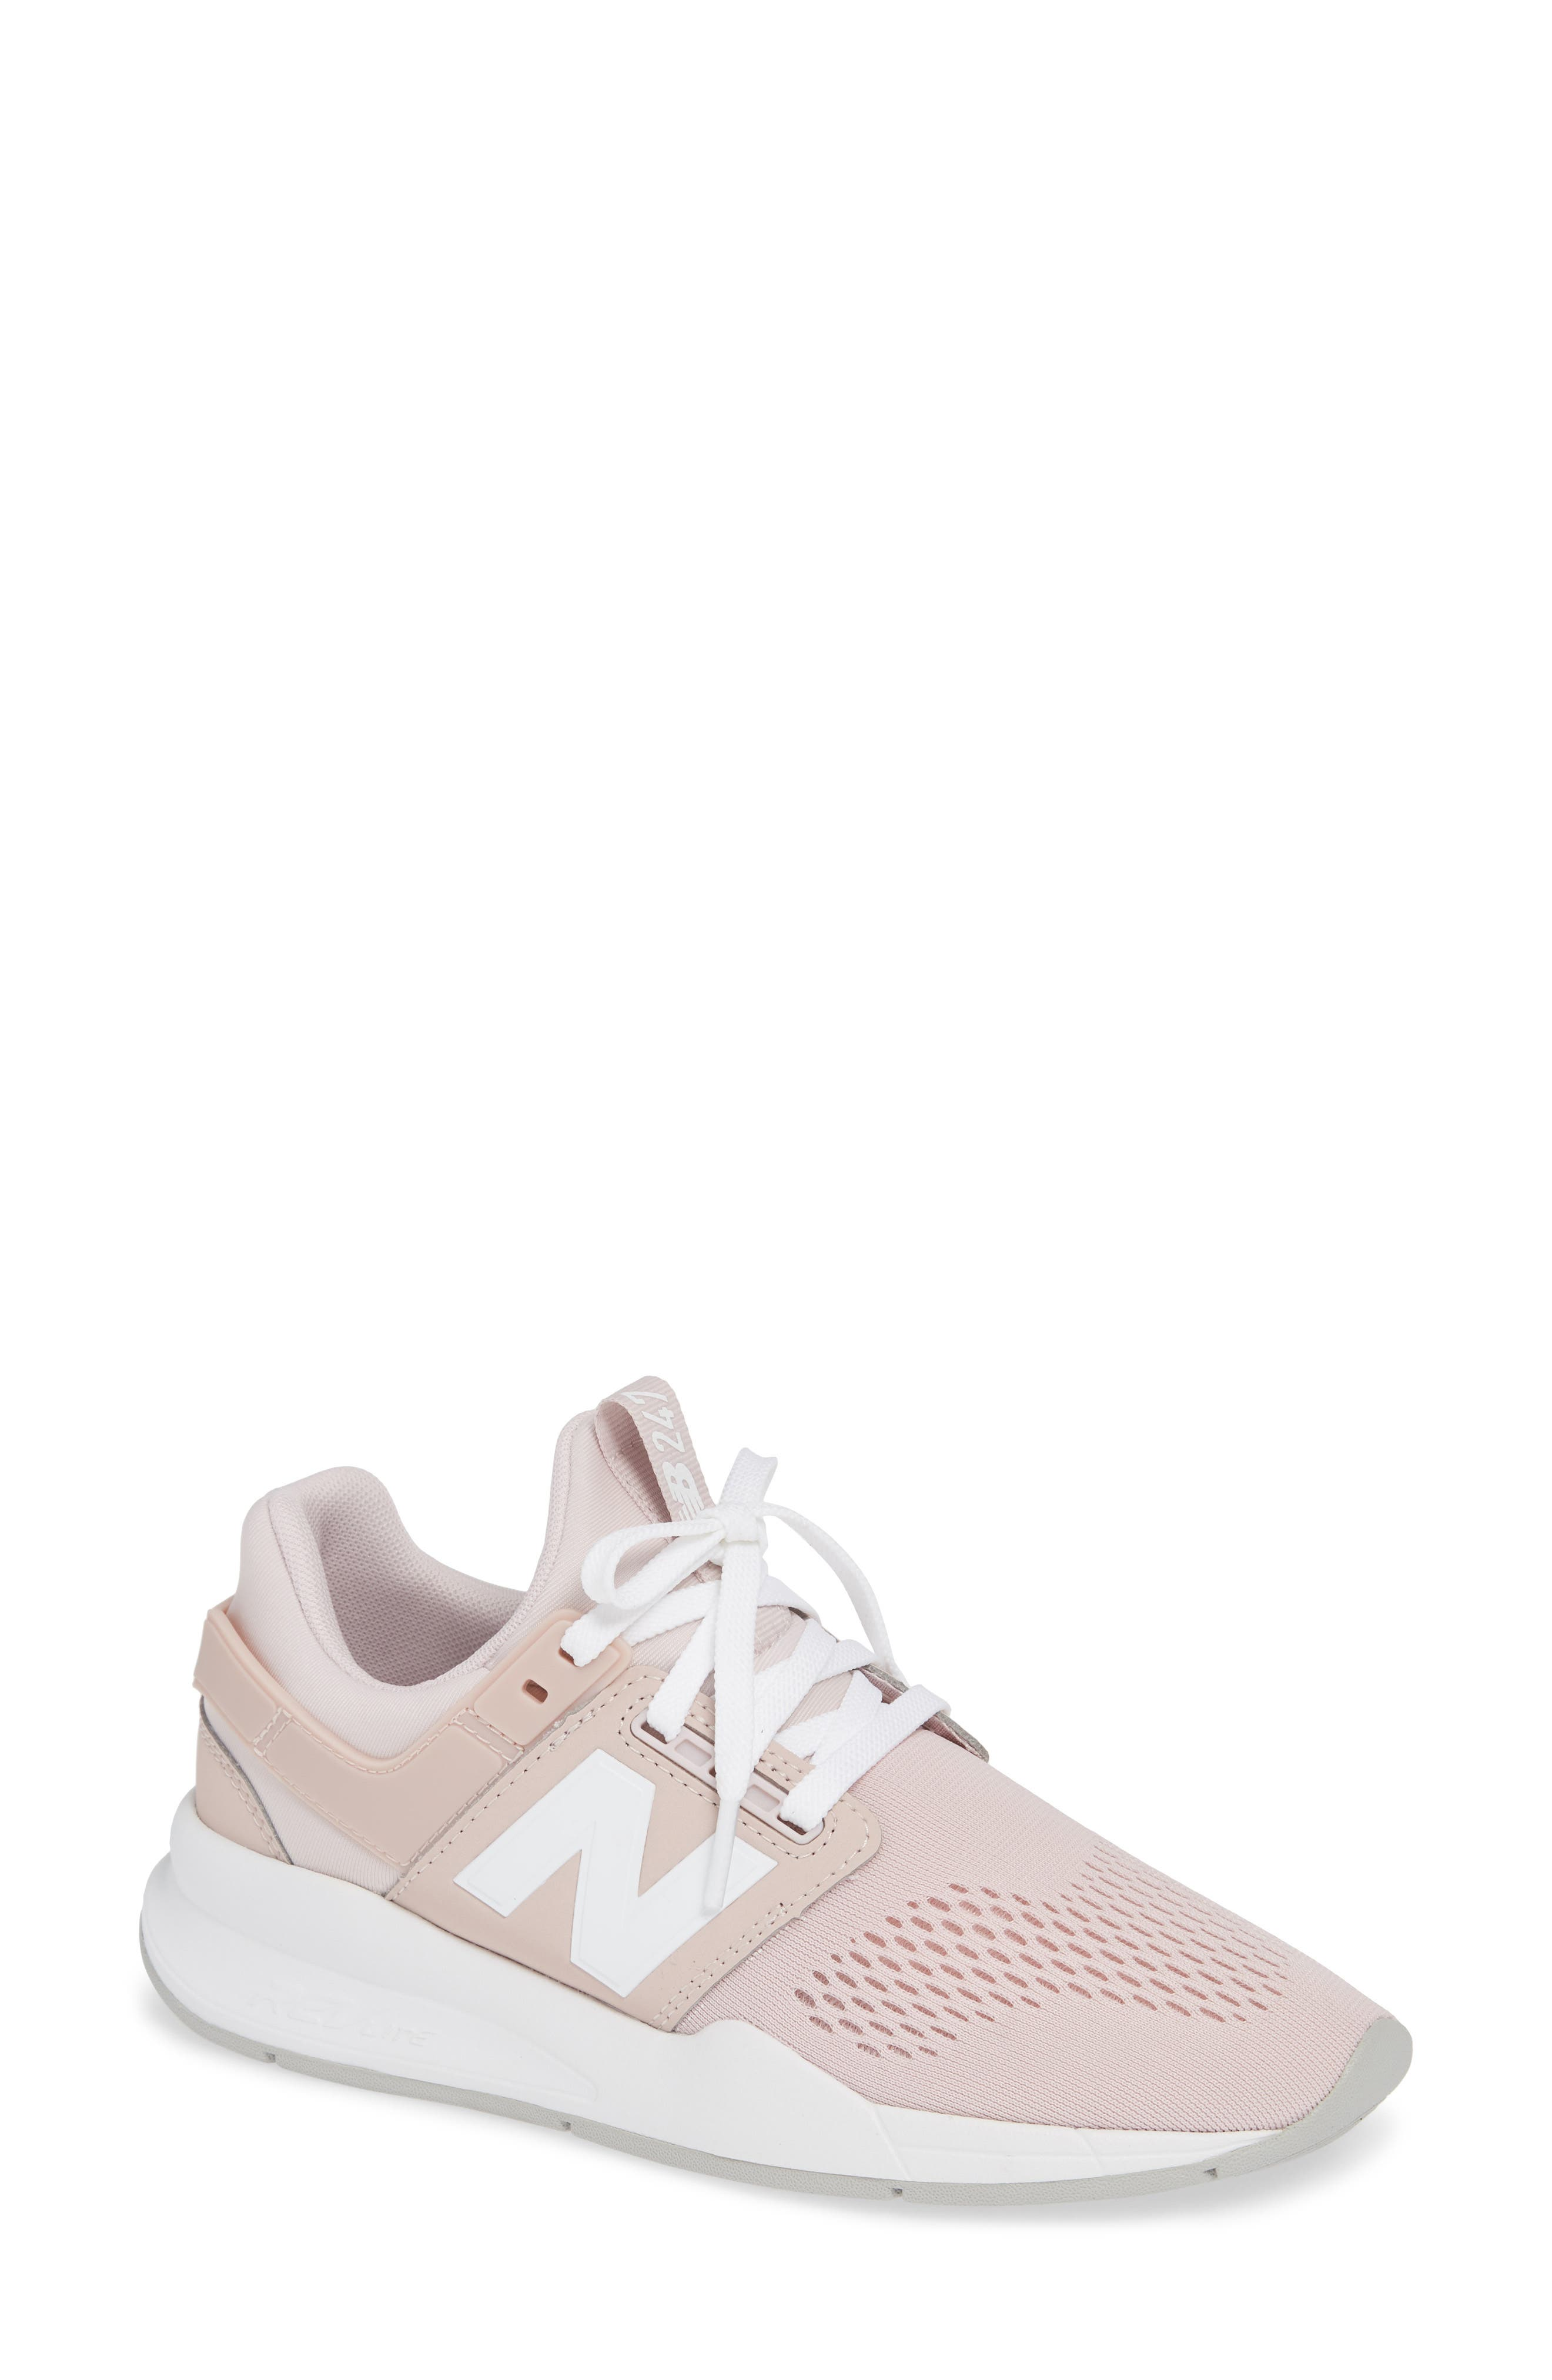 247 Sneaker,                             Main thumbnail 1, color,                             CONCH SHELL